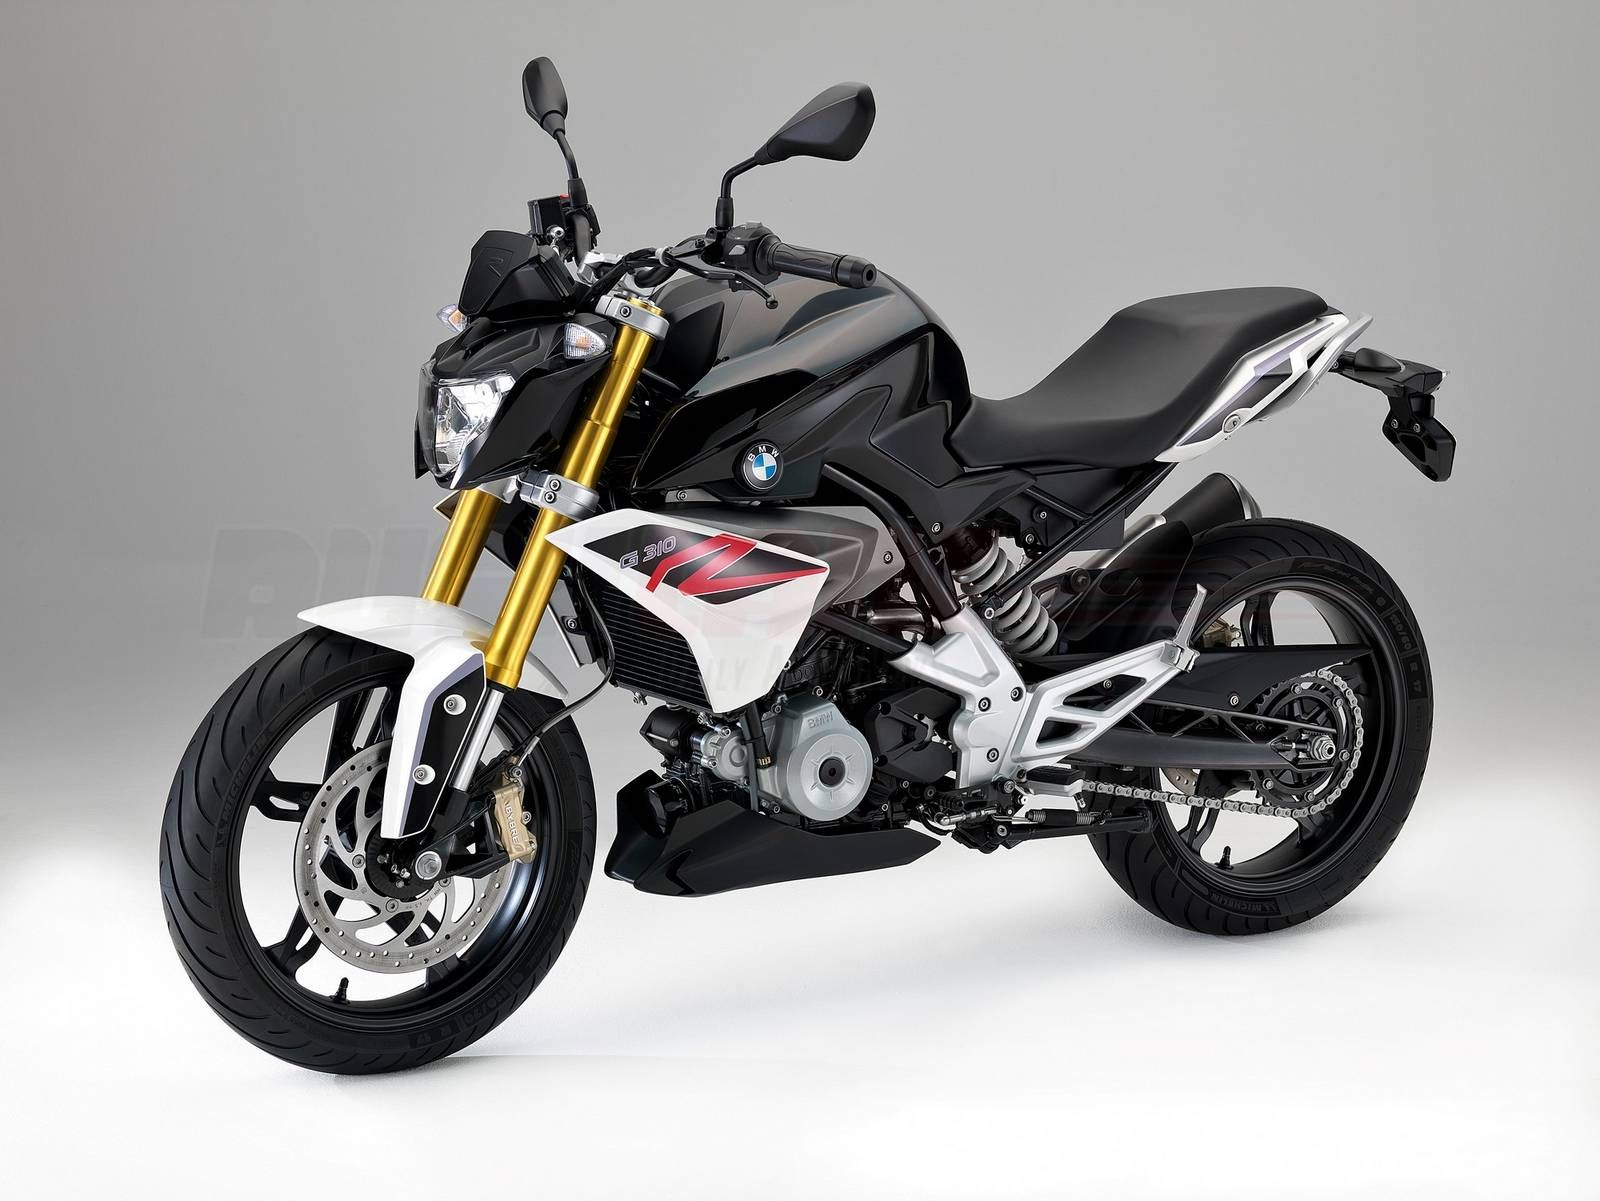 Fans Have To Wait A Little More For The All New Bmw G310 R